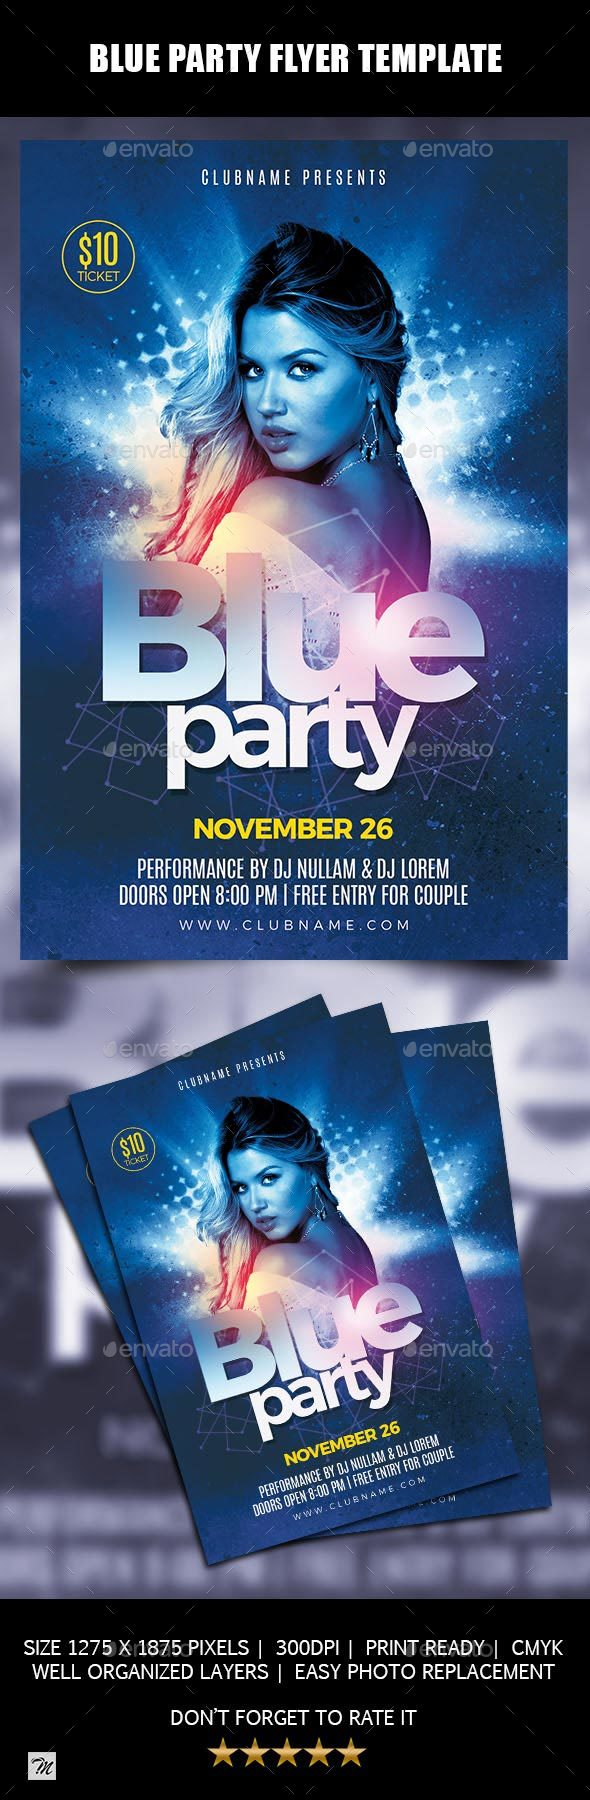 Blue Party Flyer Template - Clubs & Parties Events